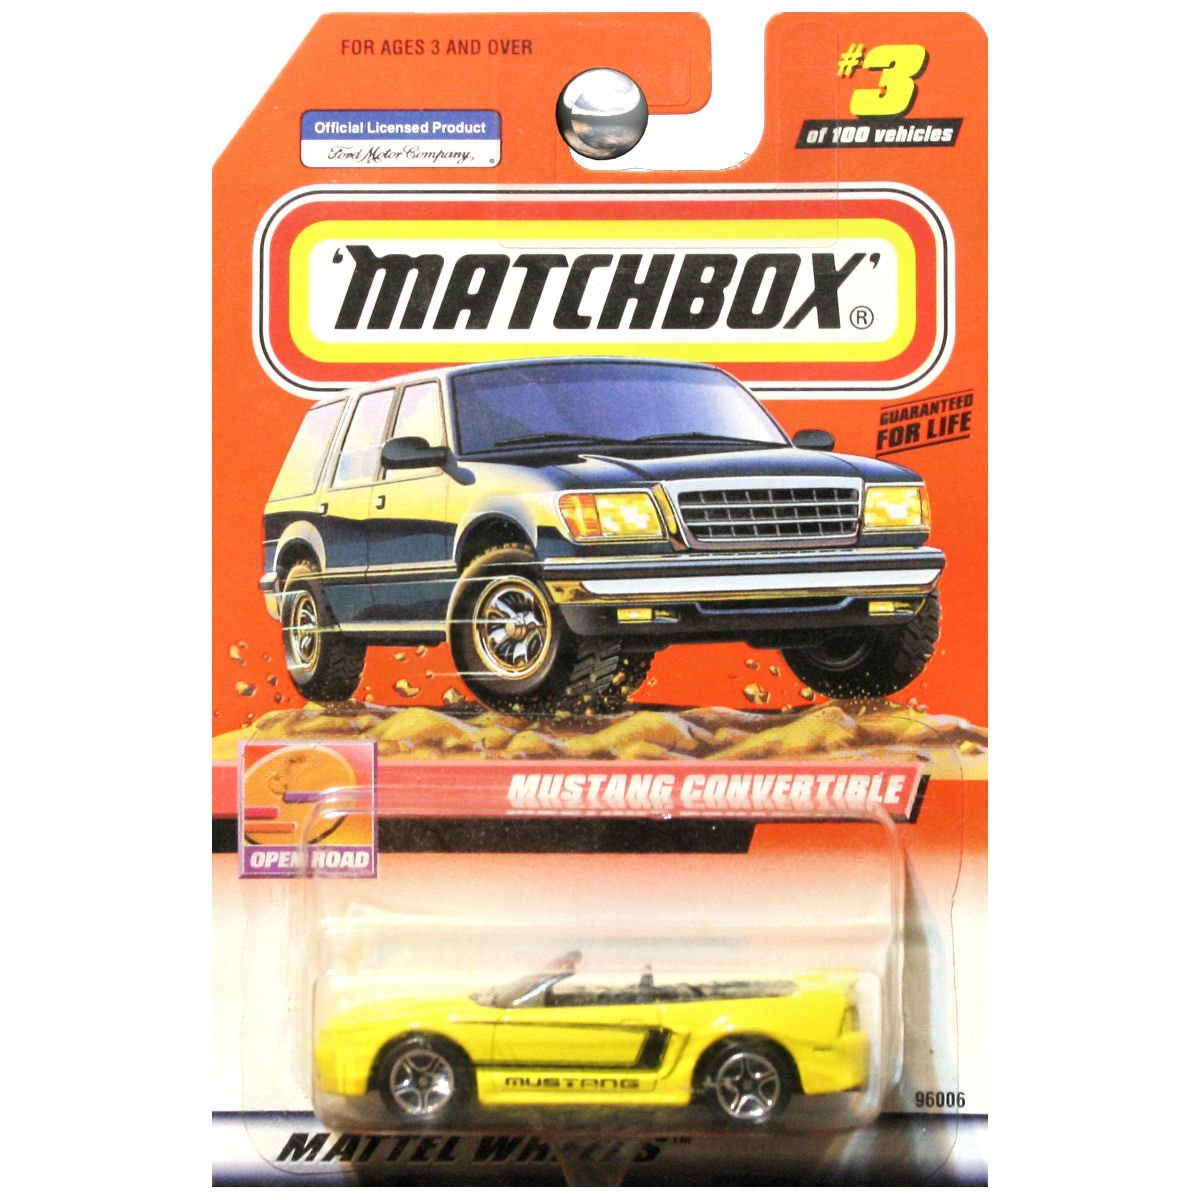 1999 Open Road Ford Mustang GT Convertible Yellow #3, By Matchbox by